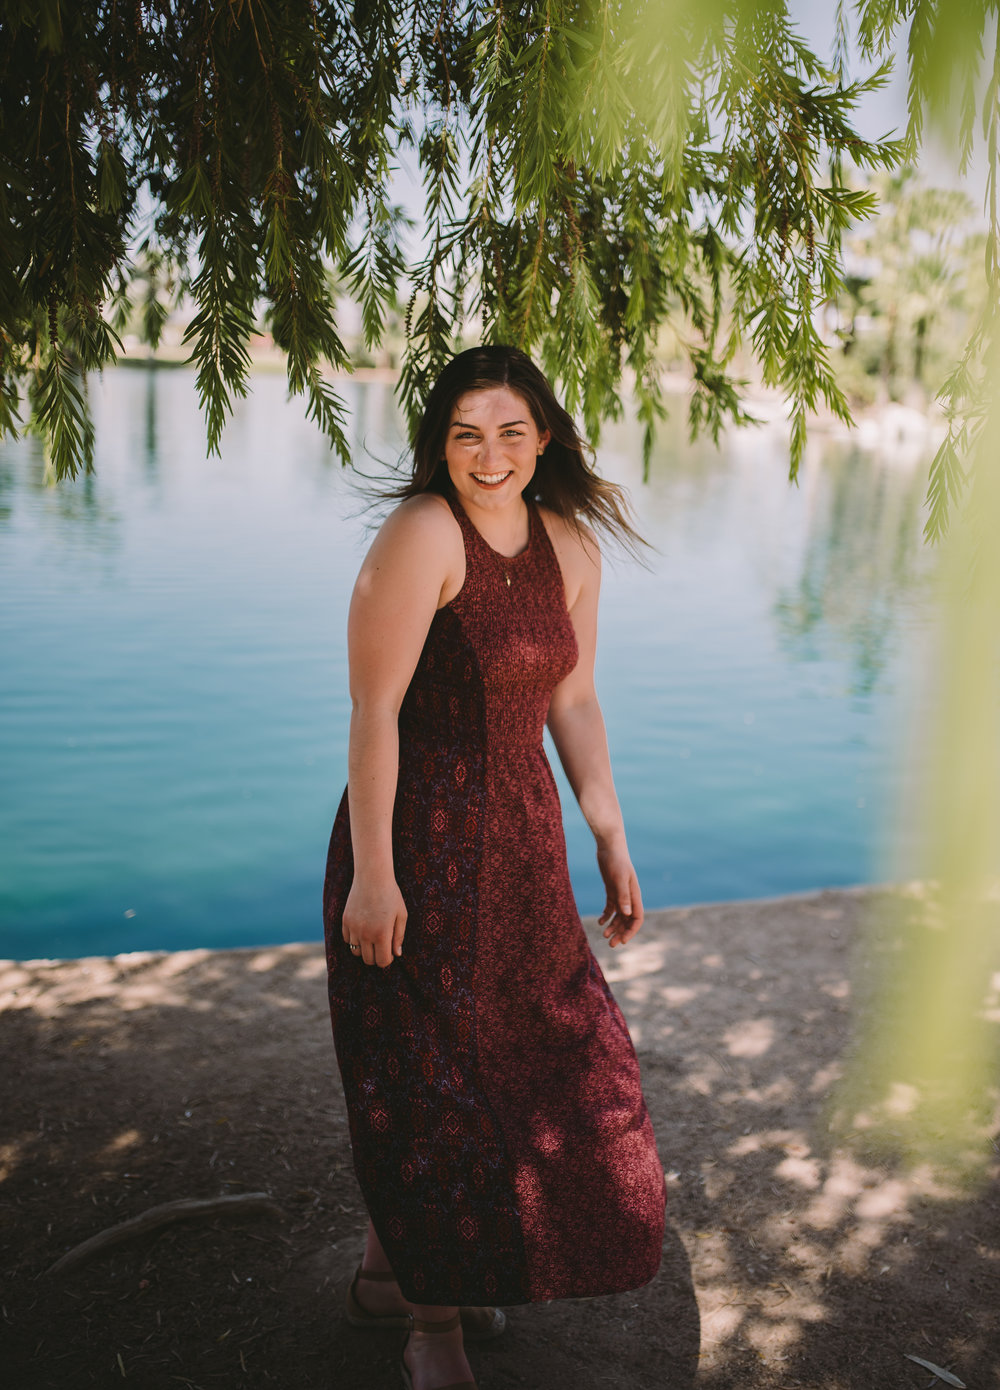 EmilyKidd_PhoenixArizona_June2018_Senior Photography In Phoenix Arizona_ArizonaSeniorPhotographer_SamanthaRosePhotography_BLOG_053.JPG